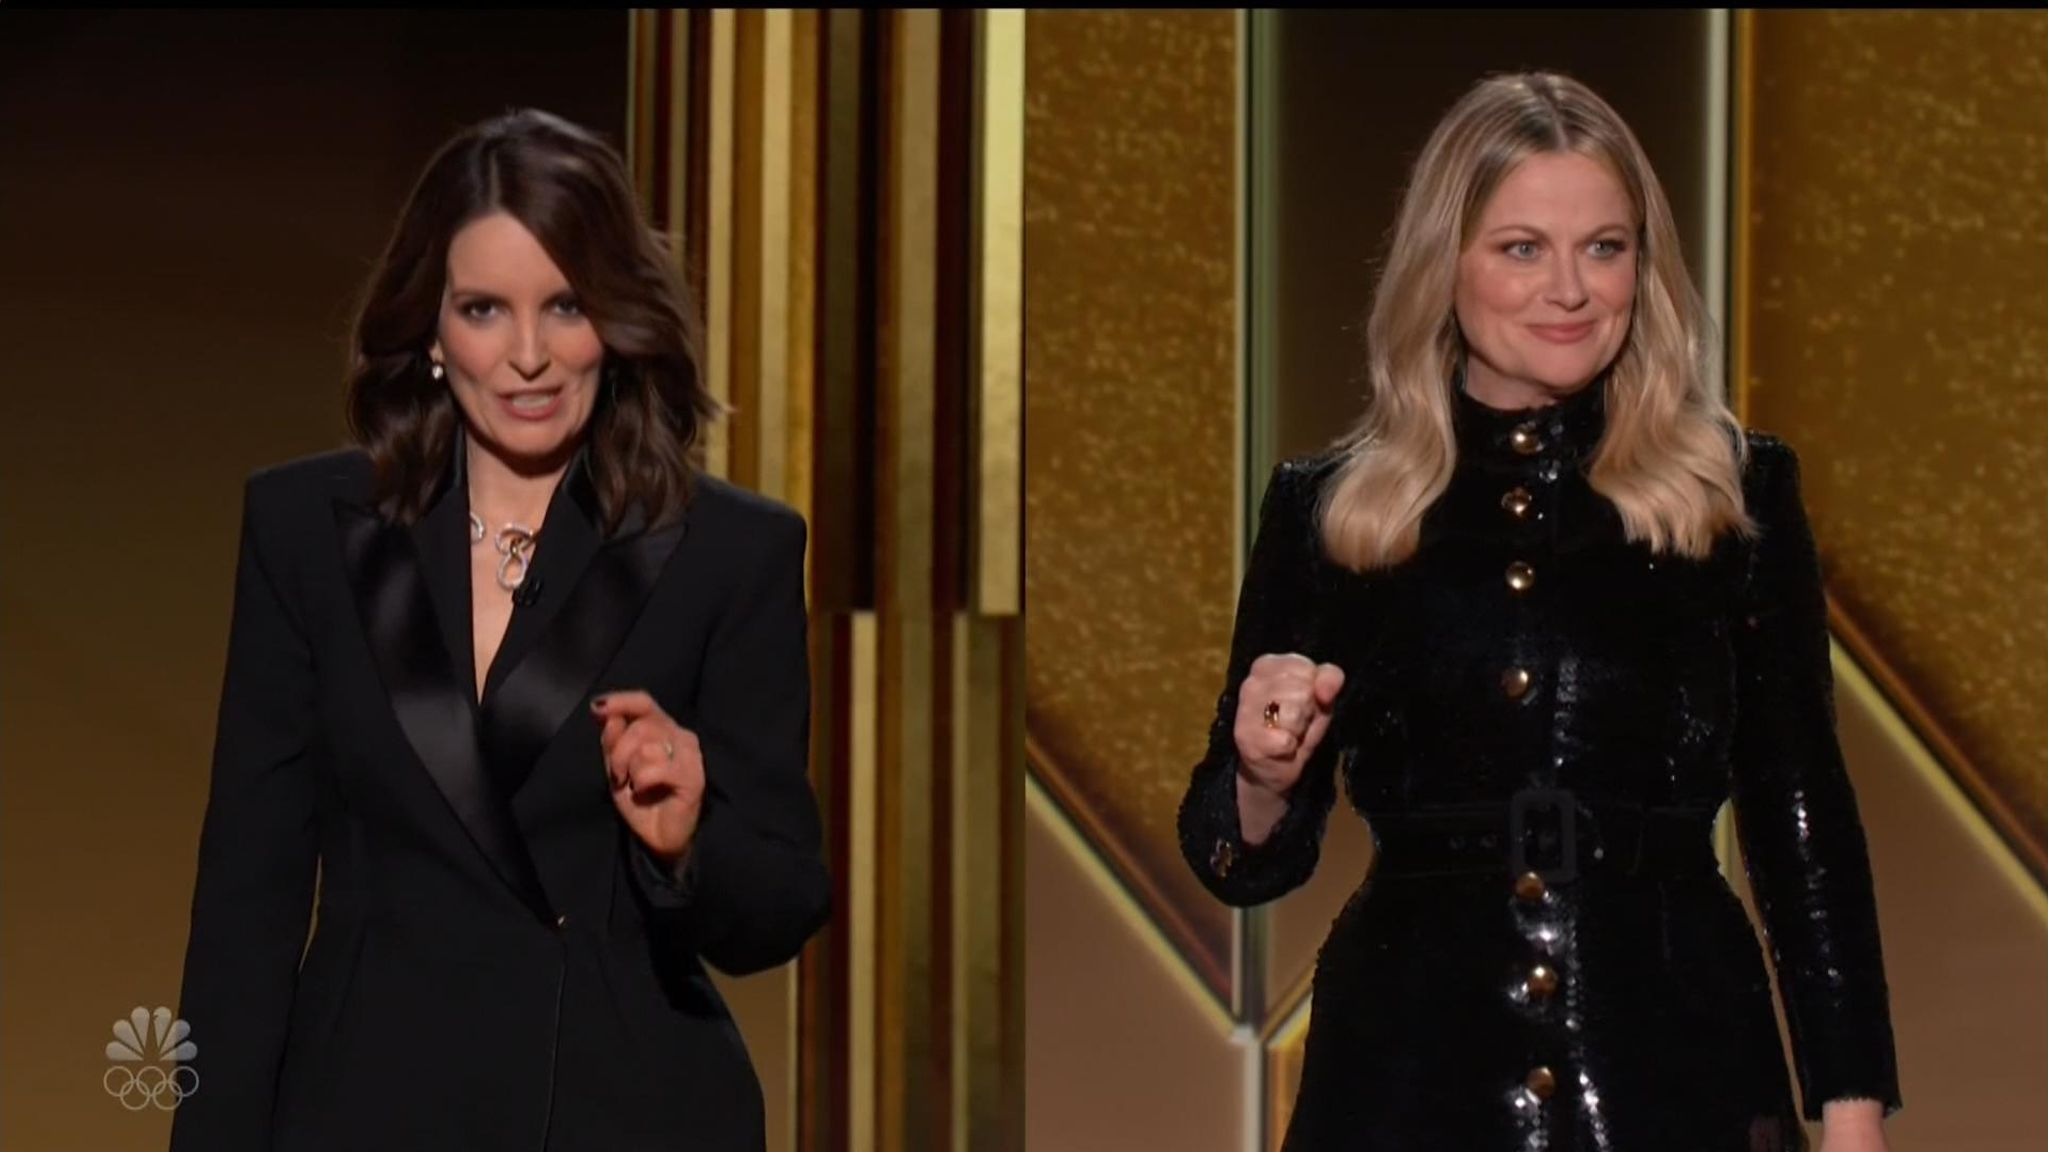 Tina Fey and Amy Poehler host the Golden Globes 2021. Pic: NBC